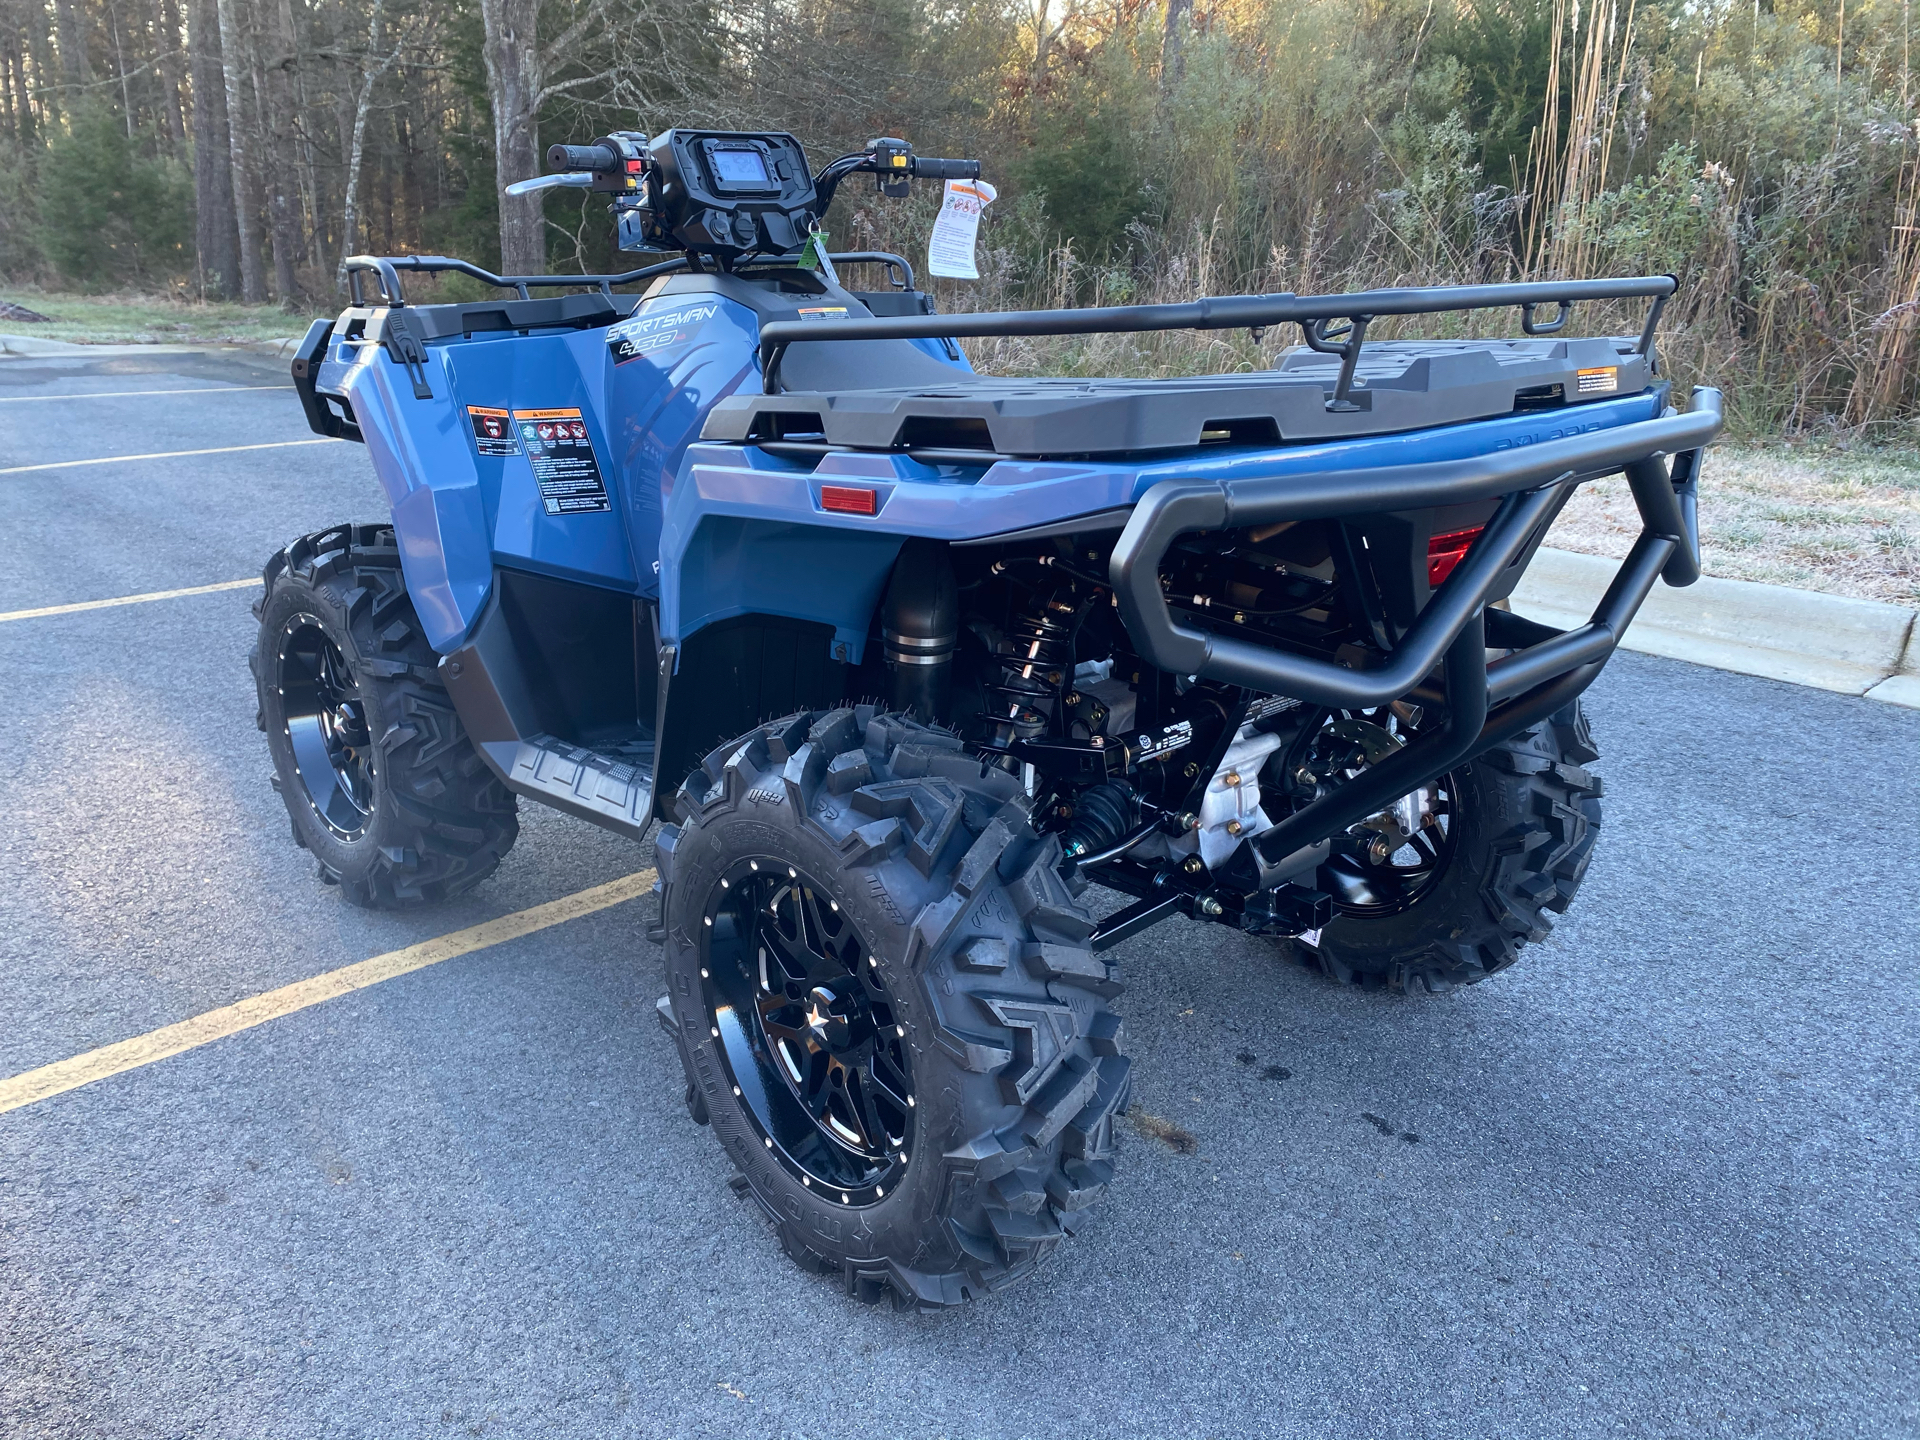 2021 Polaris Sportsman 450 H.O. in Albemarle, North Carolina - Photo 9